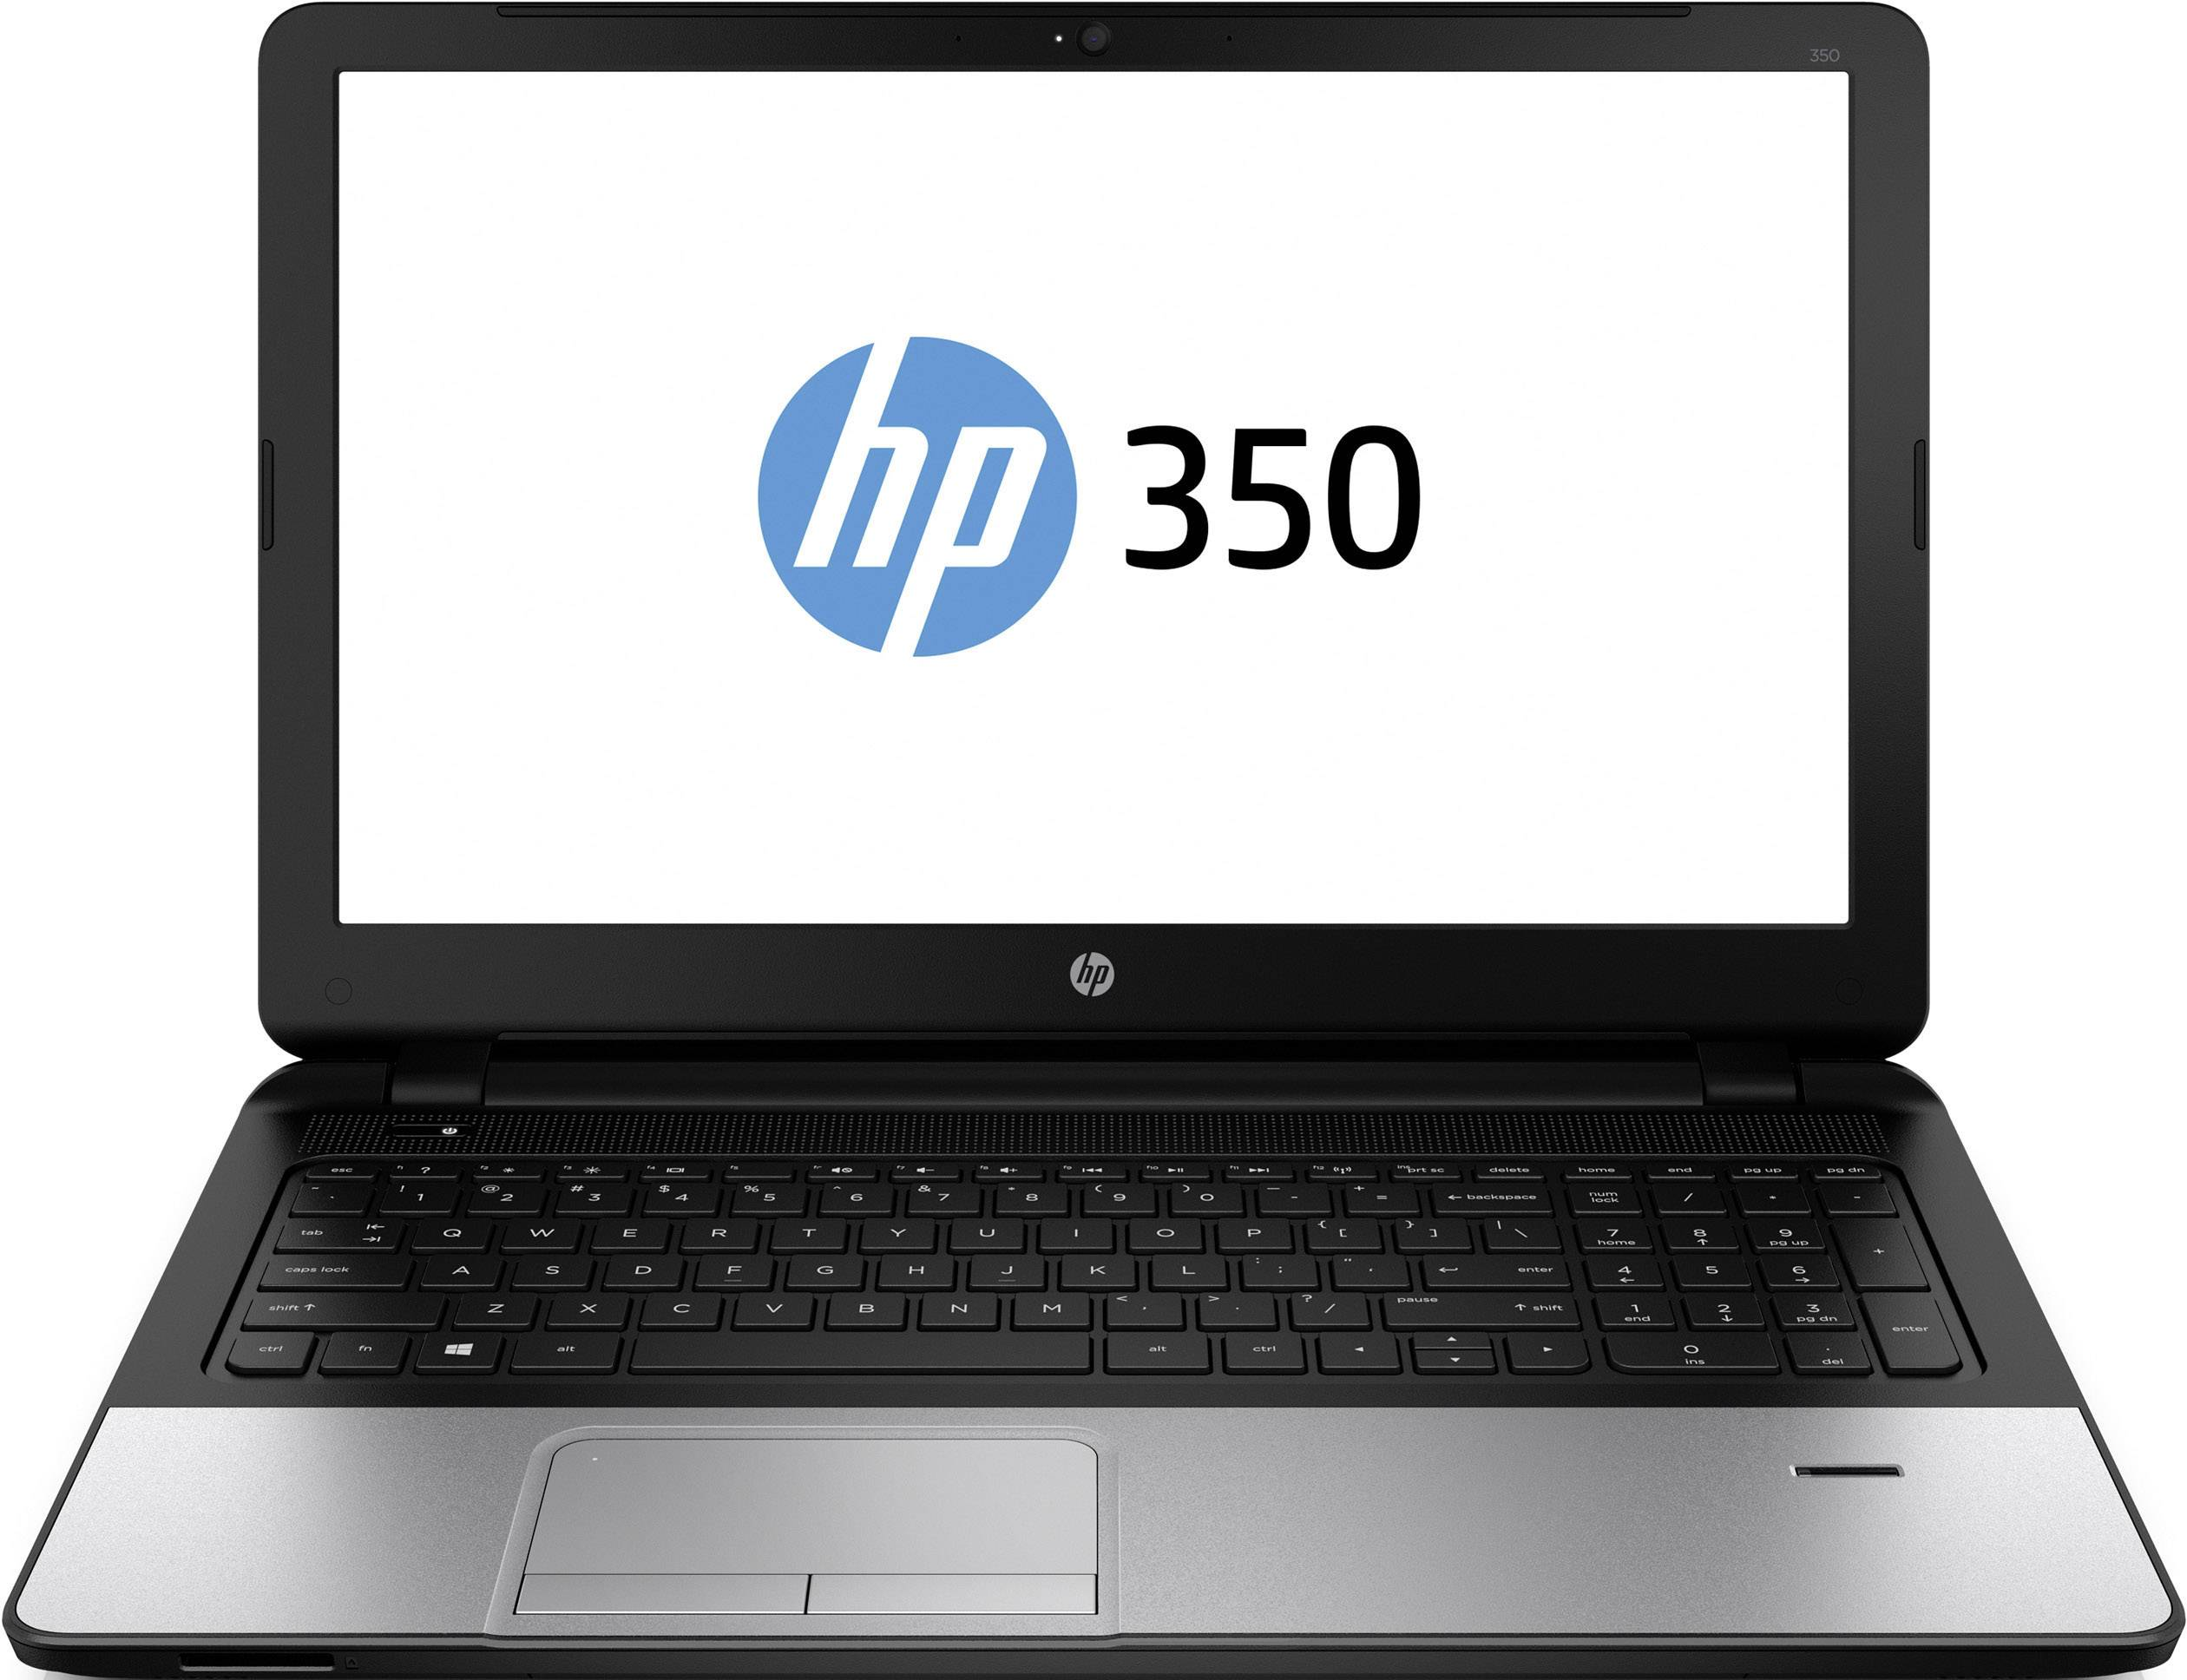 HP 350 G1 () Laptop Intel Core i3 i3-4005U 4 GB 750 GB HDD Intel HD  Graphics Microsoft Windows® 7 Professional 64-Bi | Conrad.com